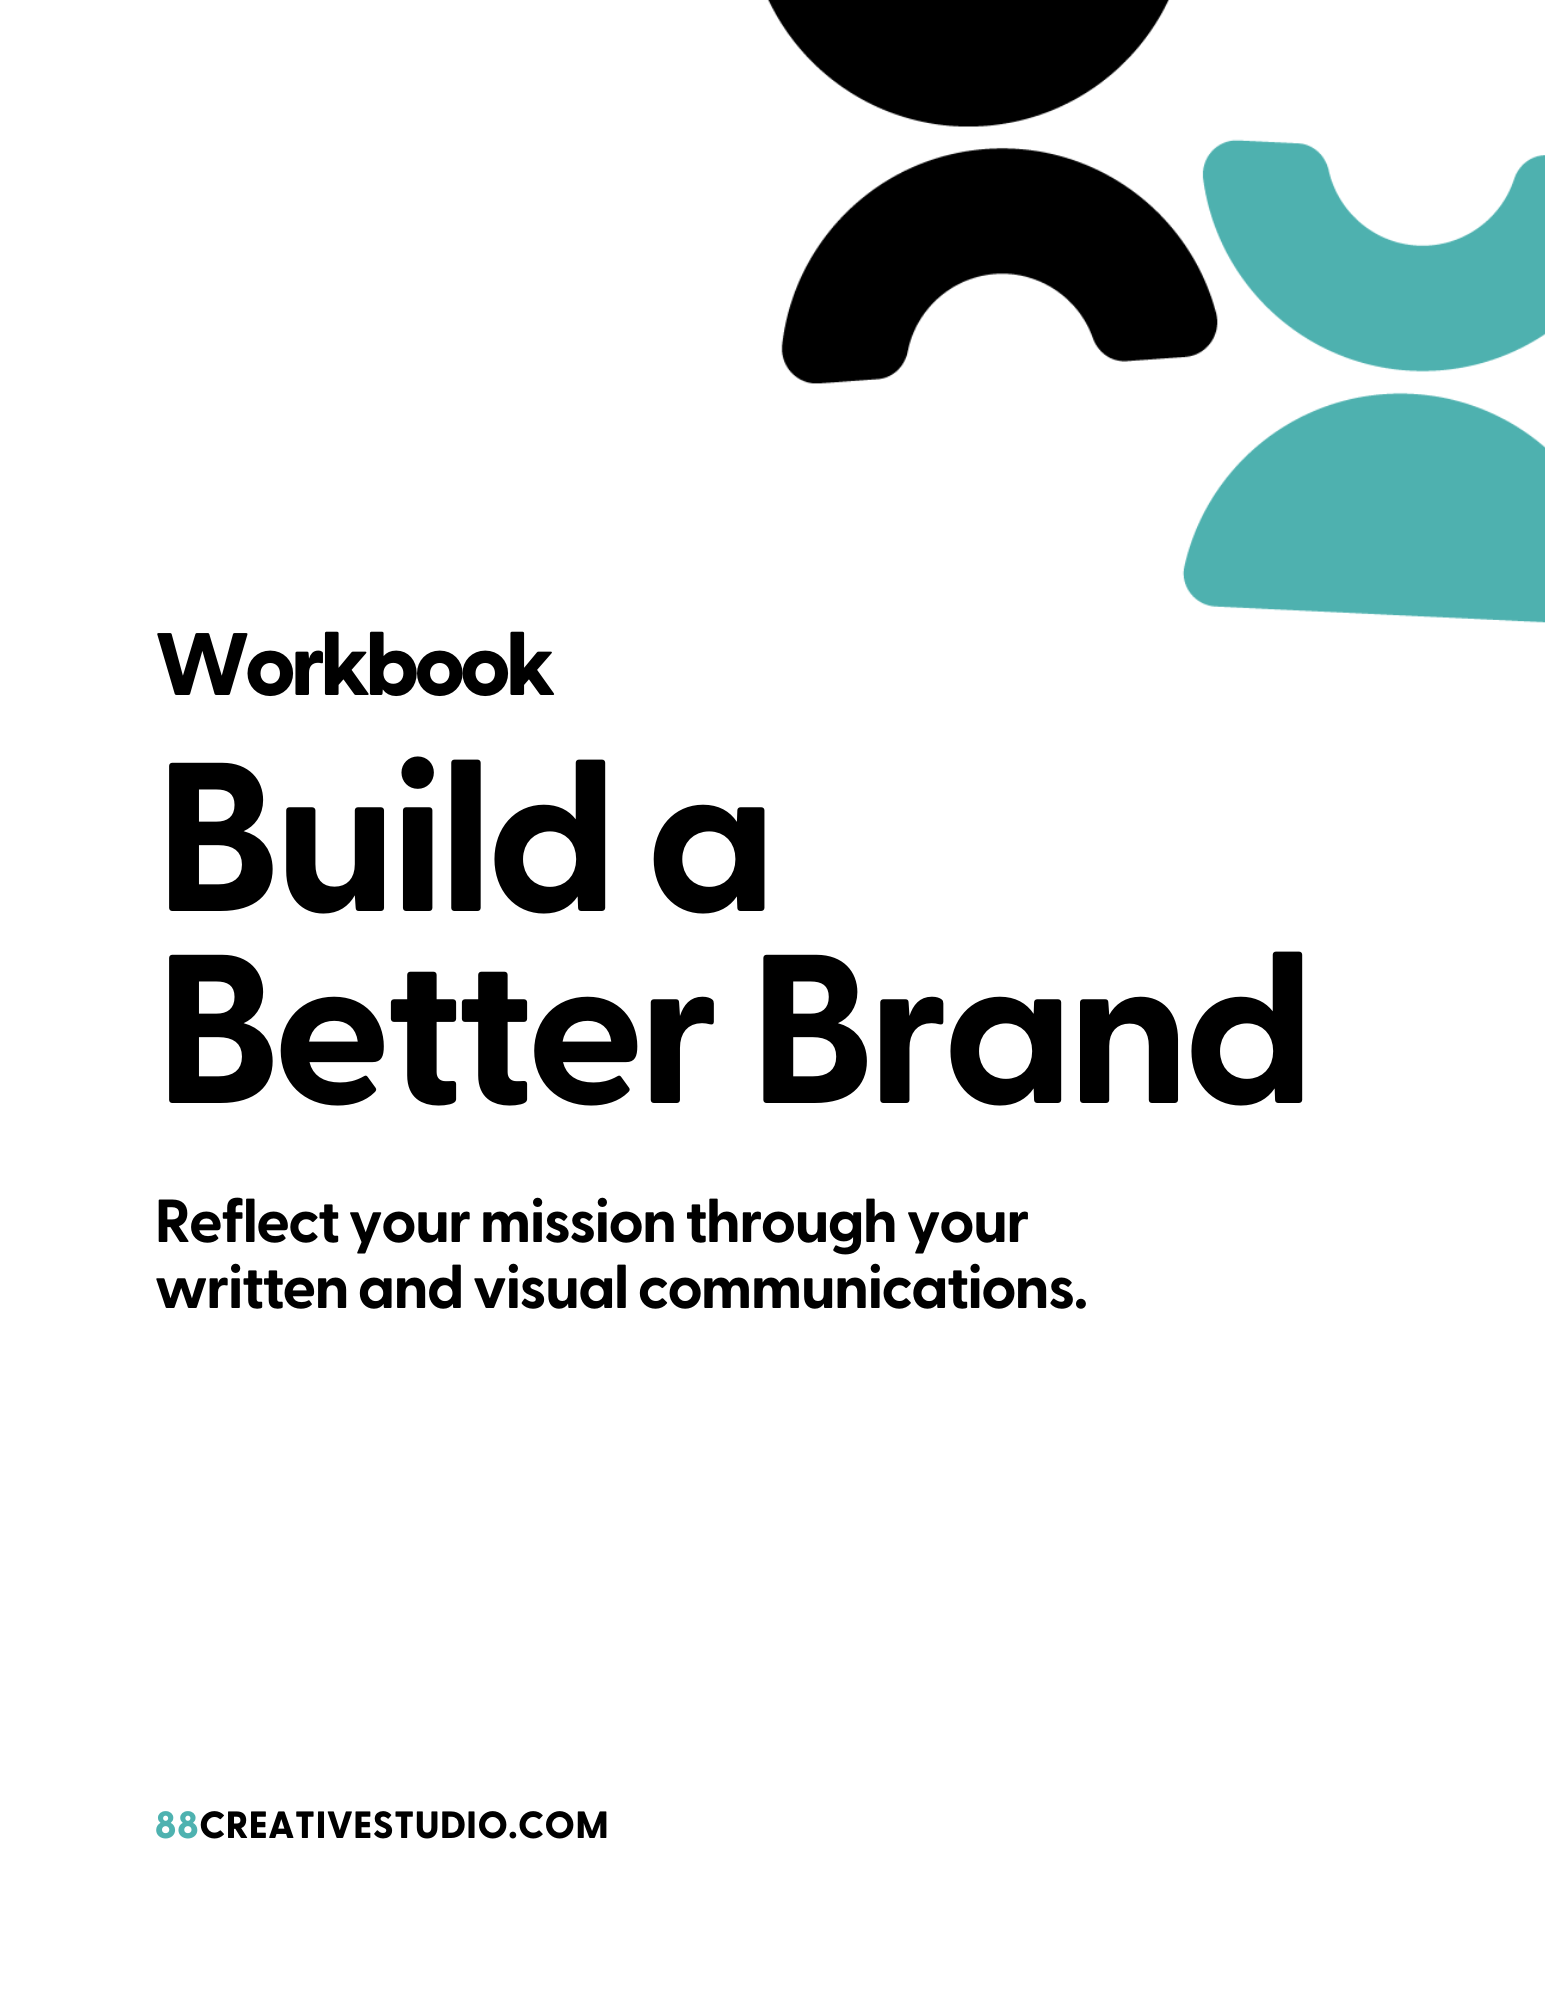 Workbook Cover - Build a Better Brand